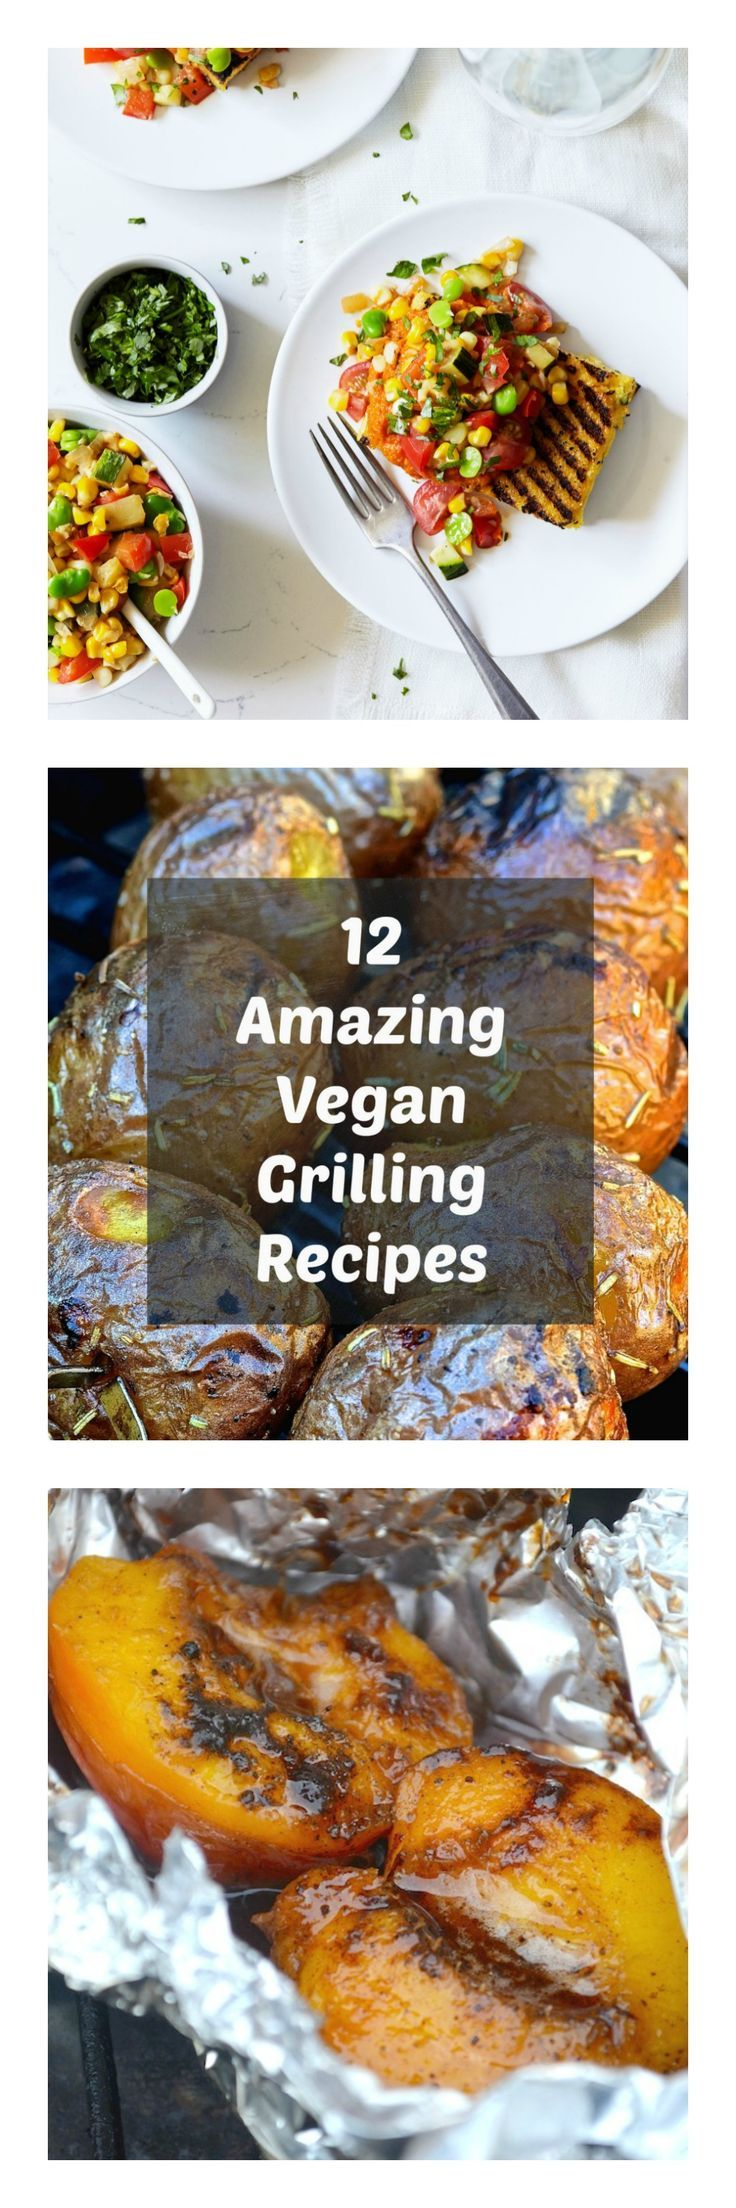 It's summer, the weather is great and grills are being fired up all over. Just because you are vegan does not mean you have to miss out on outdoor grilling, and I have rounded up a collection of 12 amazing vegan grilling recipes to inspire you. There is s